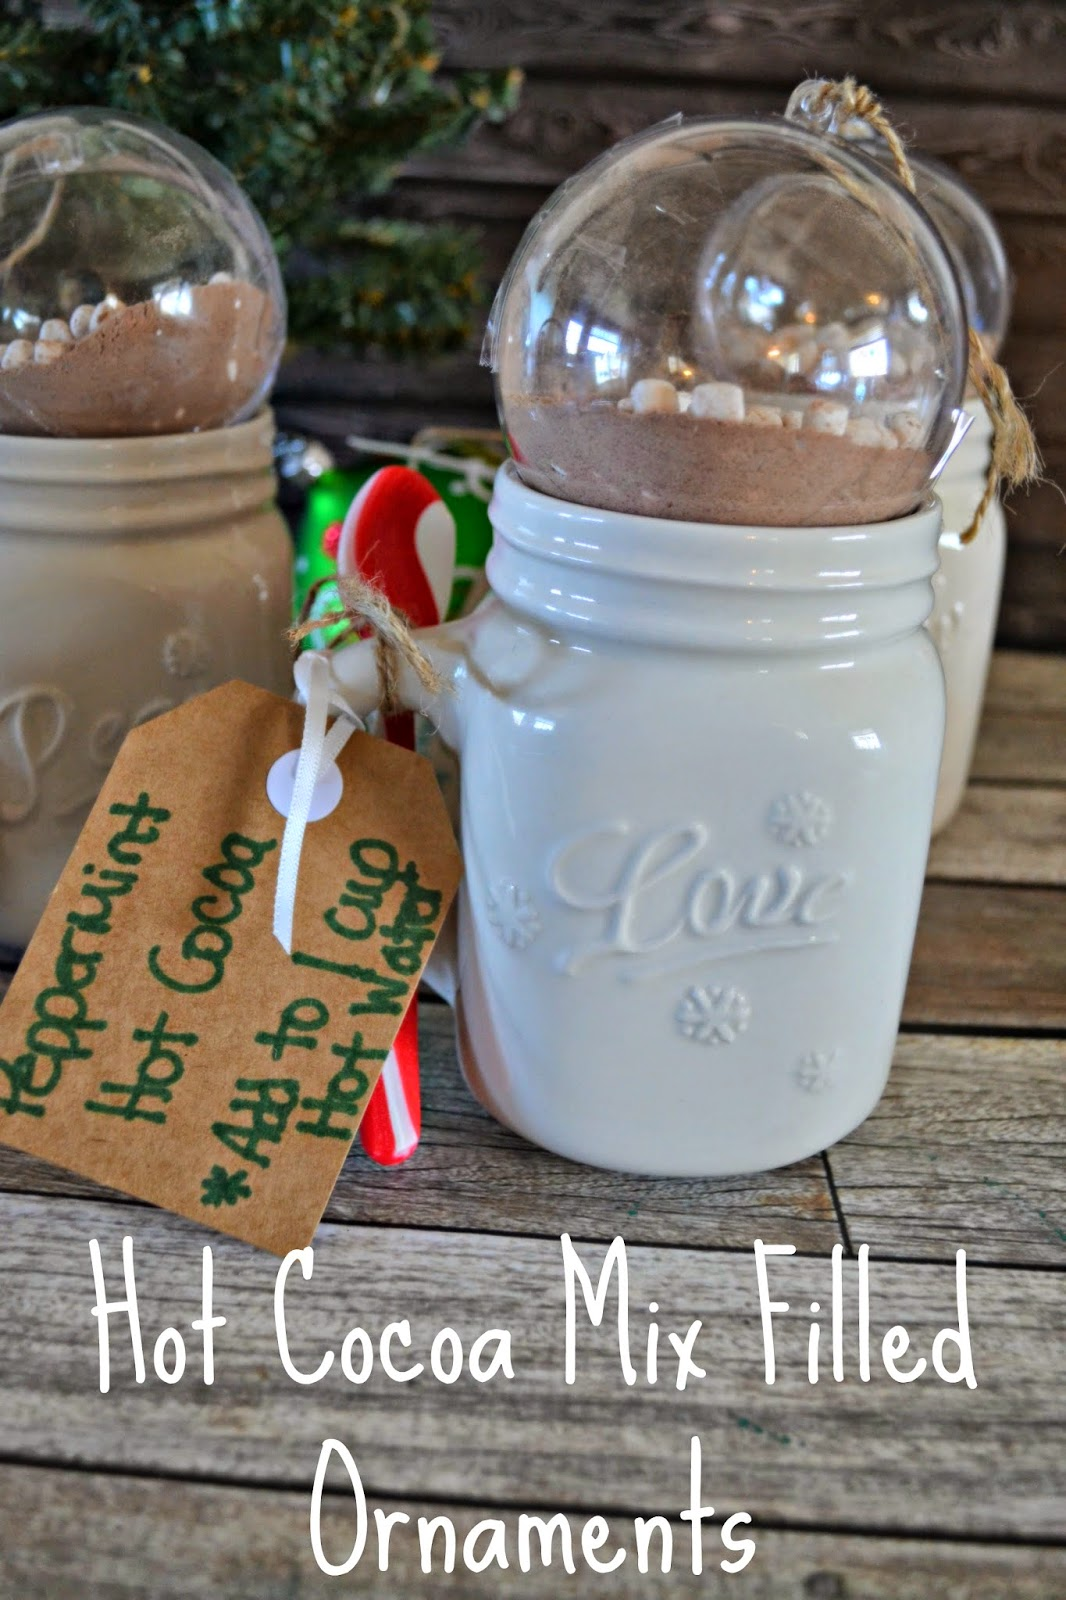 Hot Cocoa Mix Ornaments - Holiday Gift Idea | Building Our ...